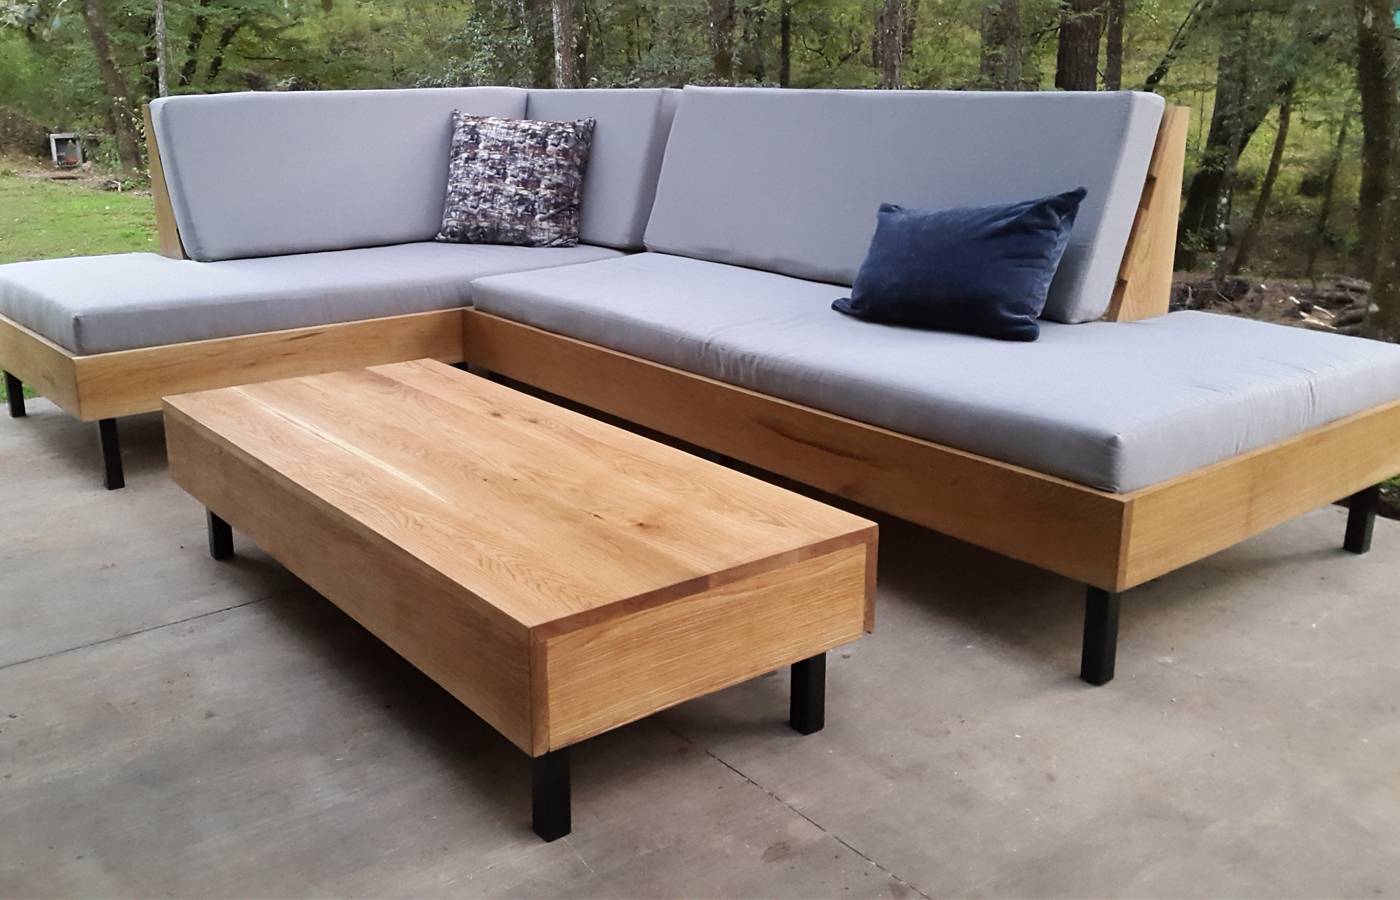 Custom Outdoor Wood Furniture